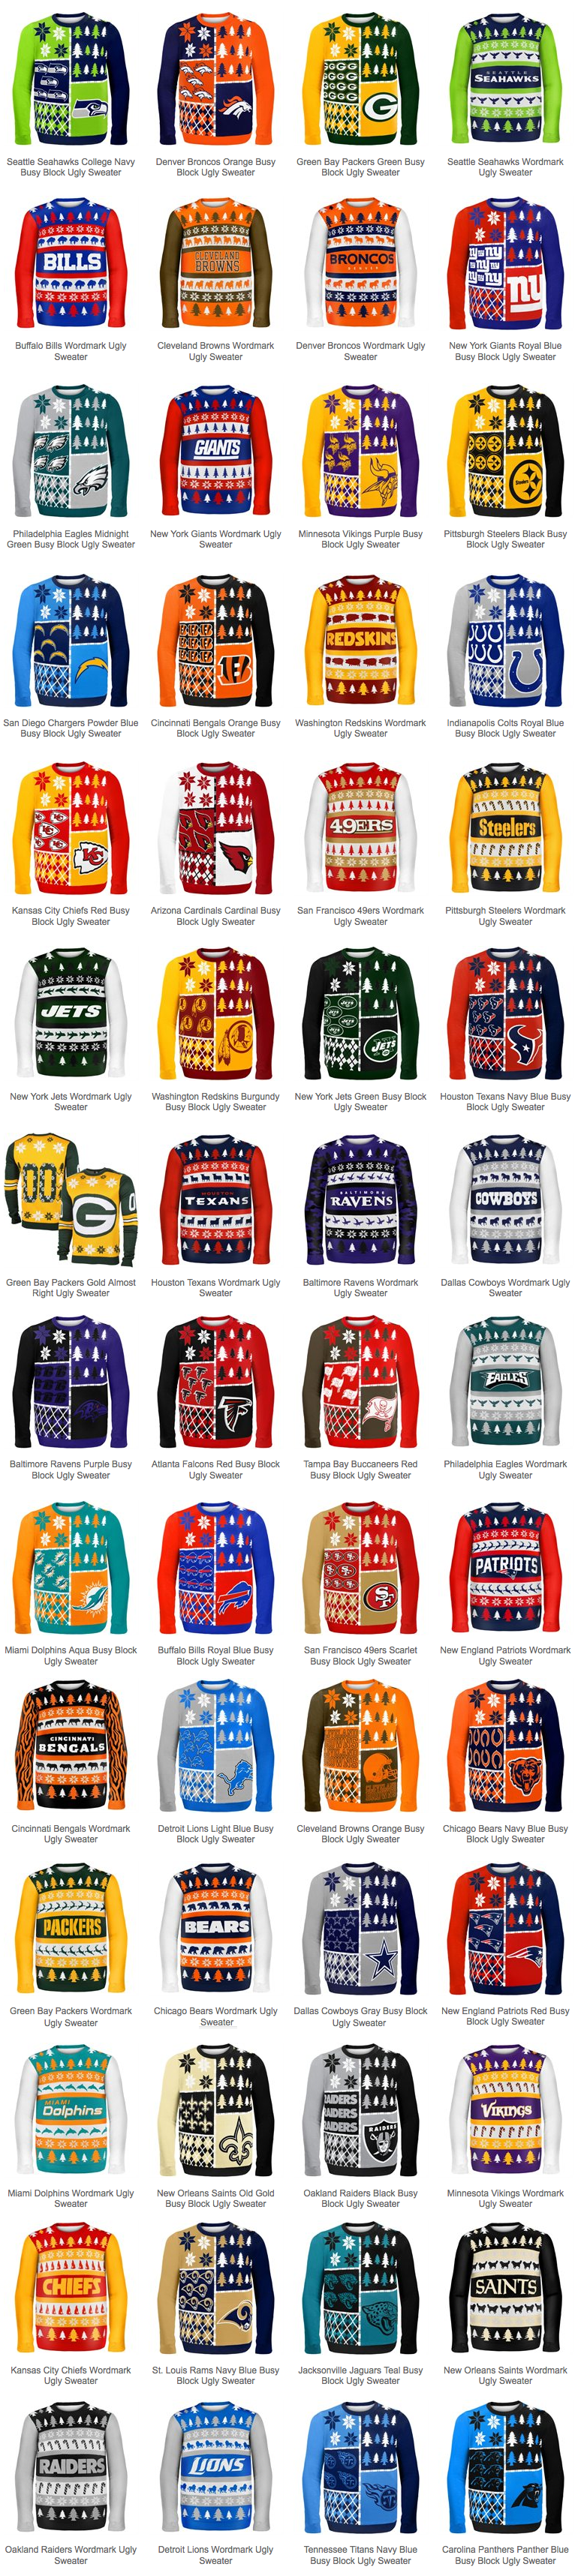 2014 nfl ugly christmas sweaters for sale - Nfl On Christmas 2014